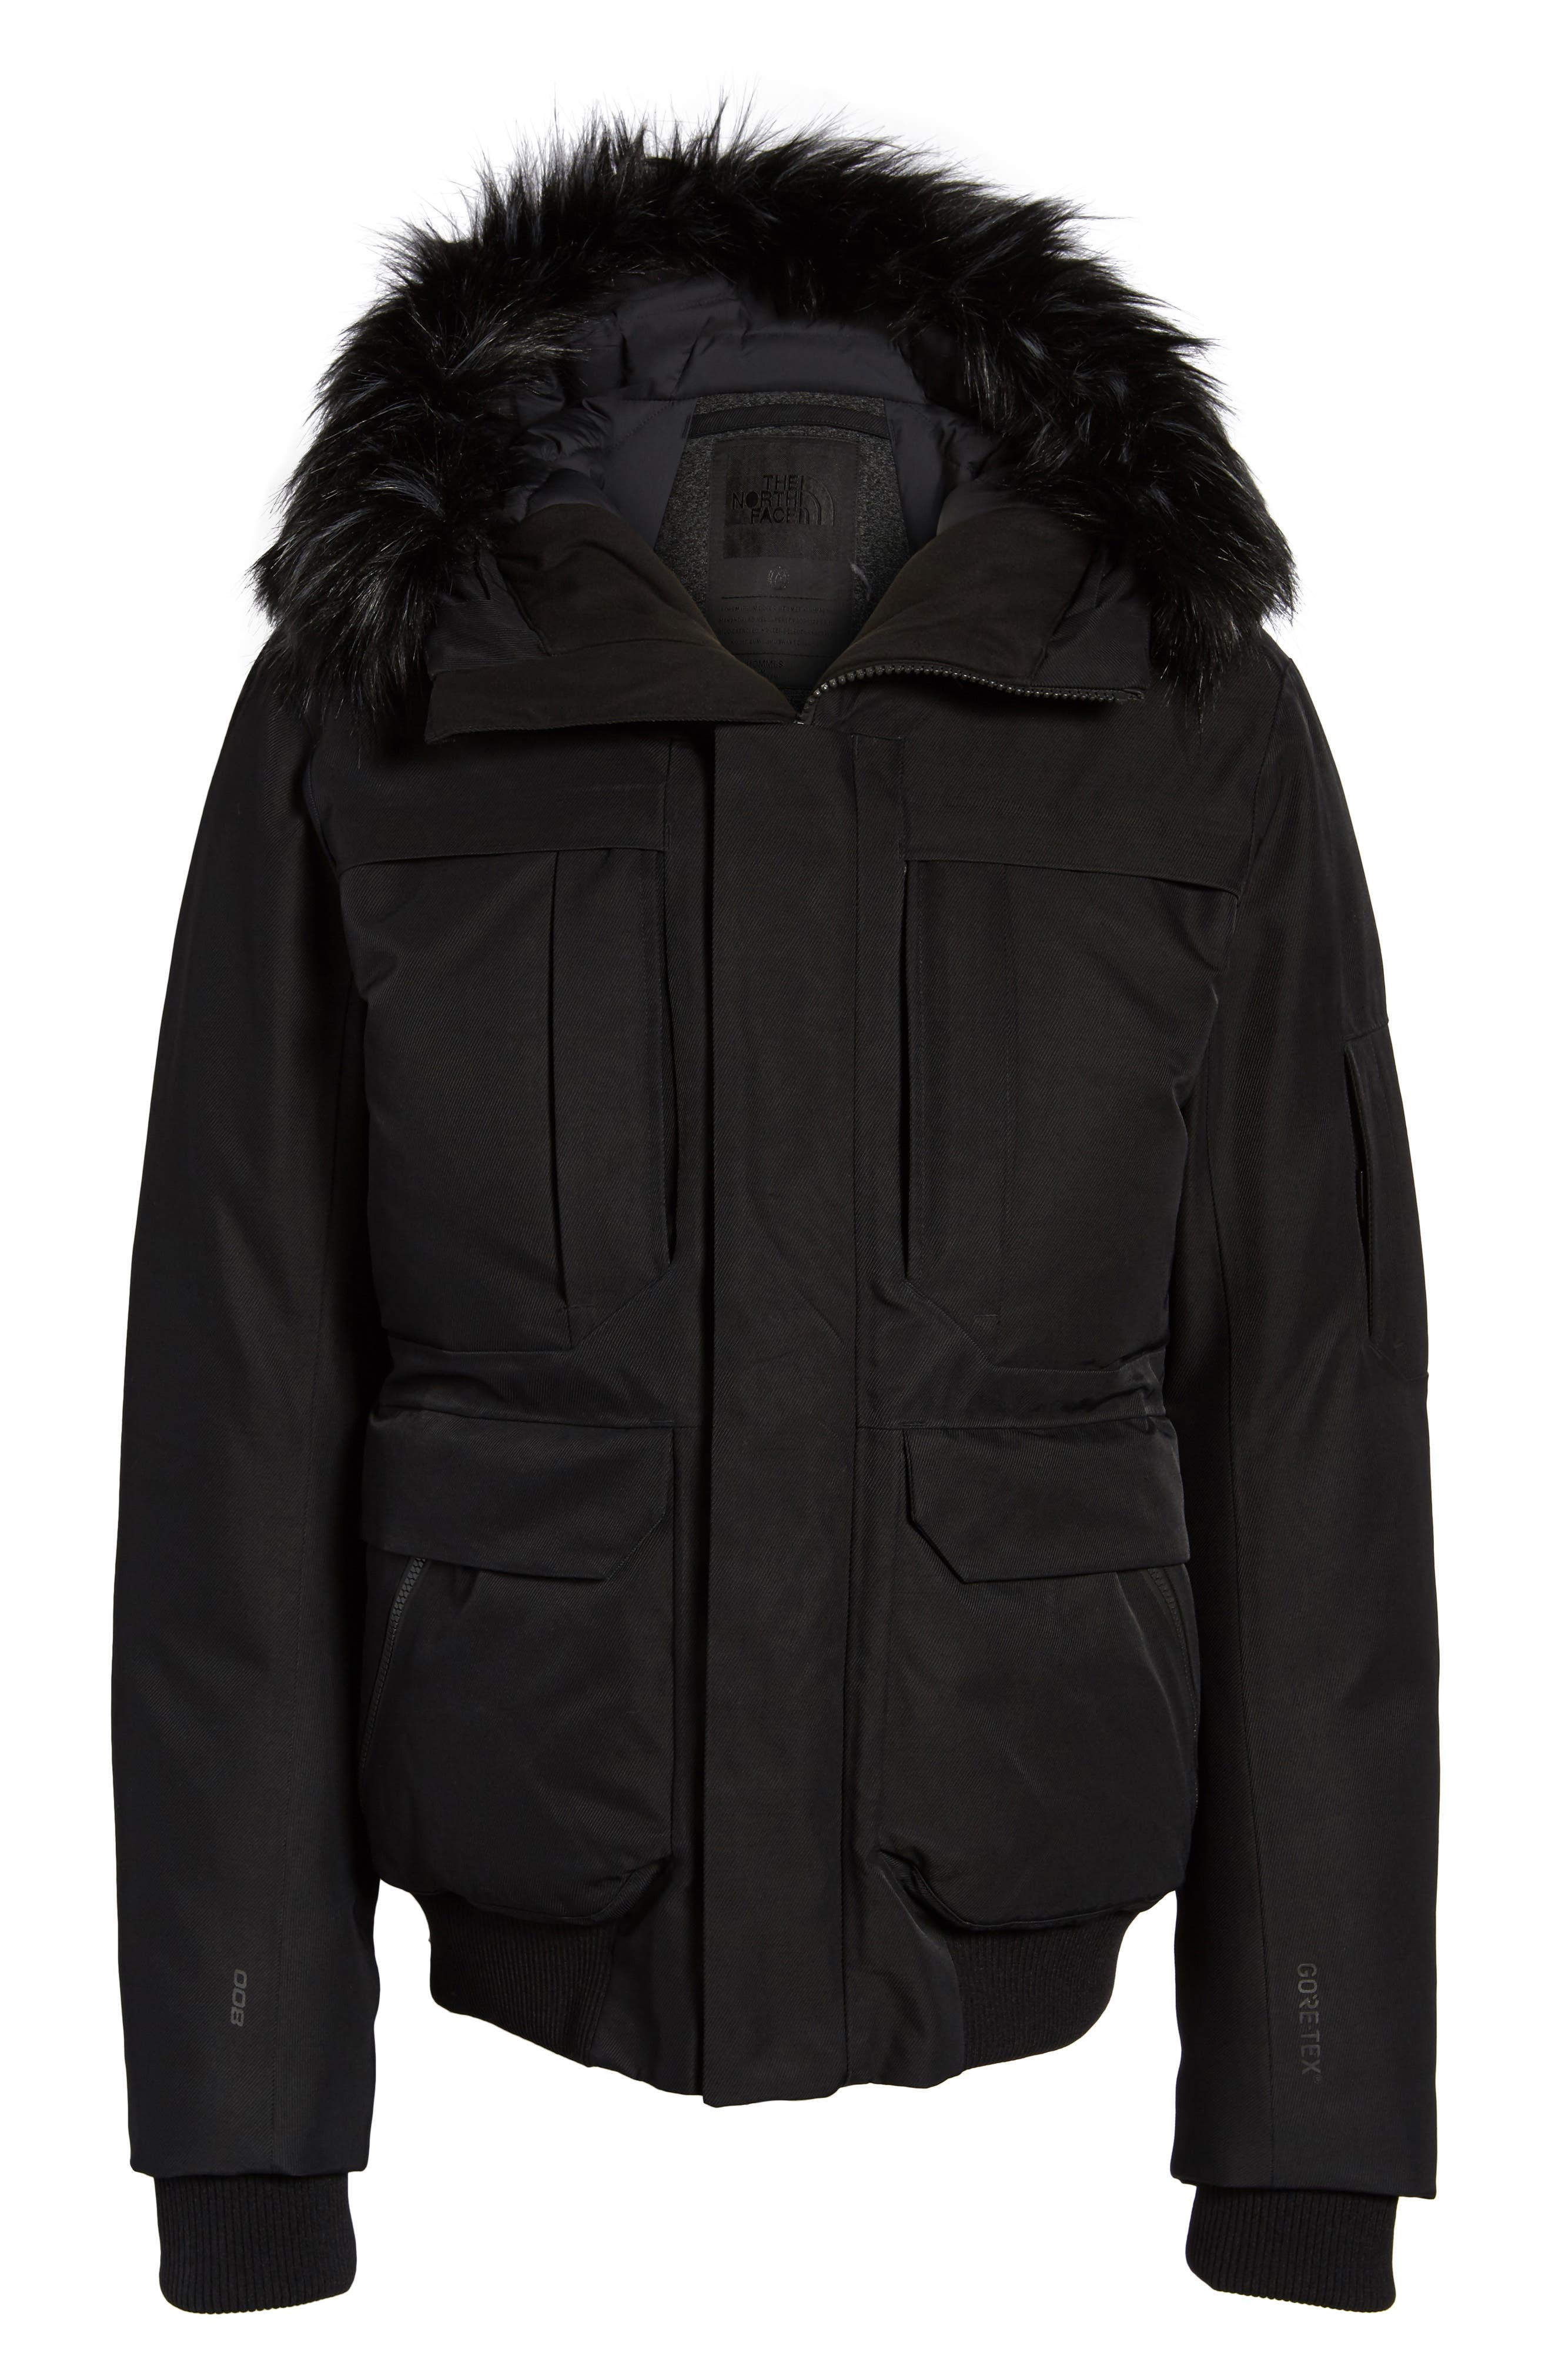 Cryos Expedition Gore-Tex<sup>®</sup> Bomber Jacket,                             Alternate thumbnail 13, color,